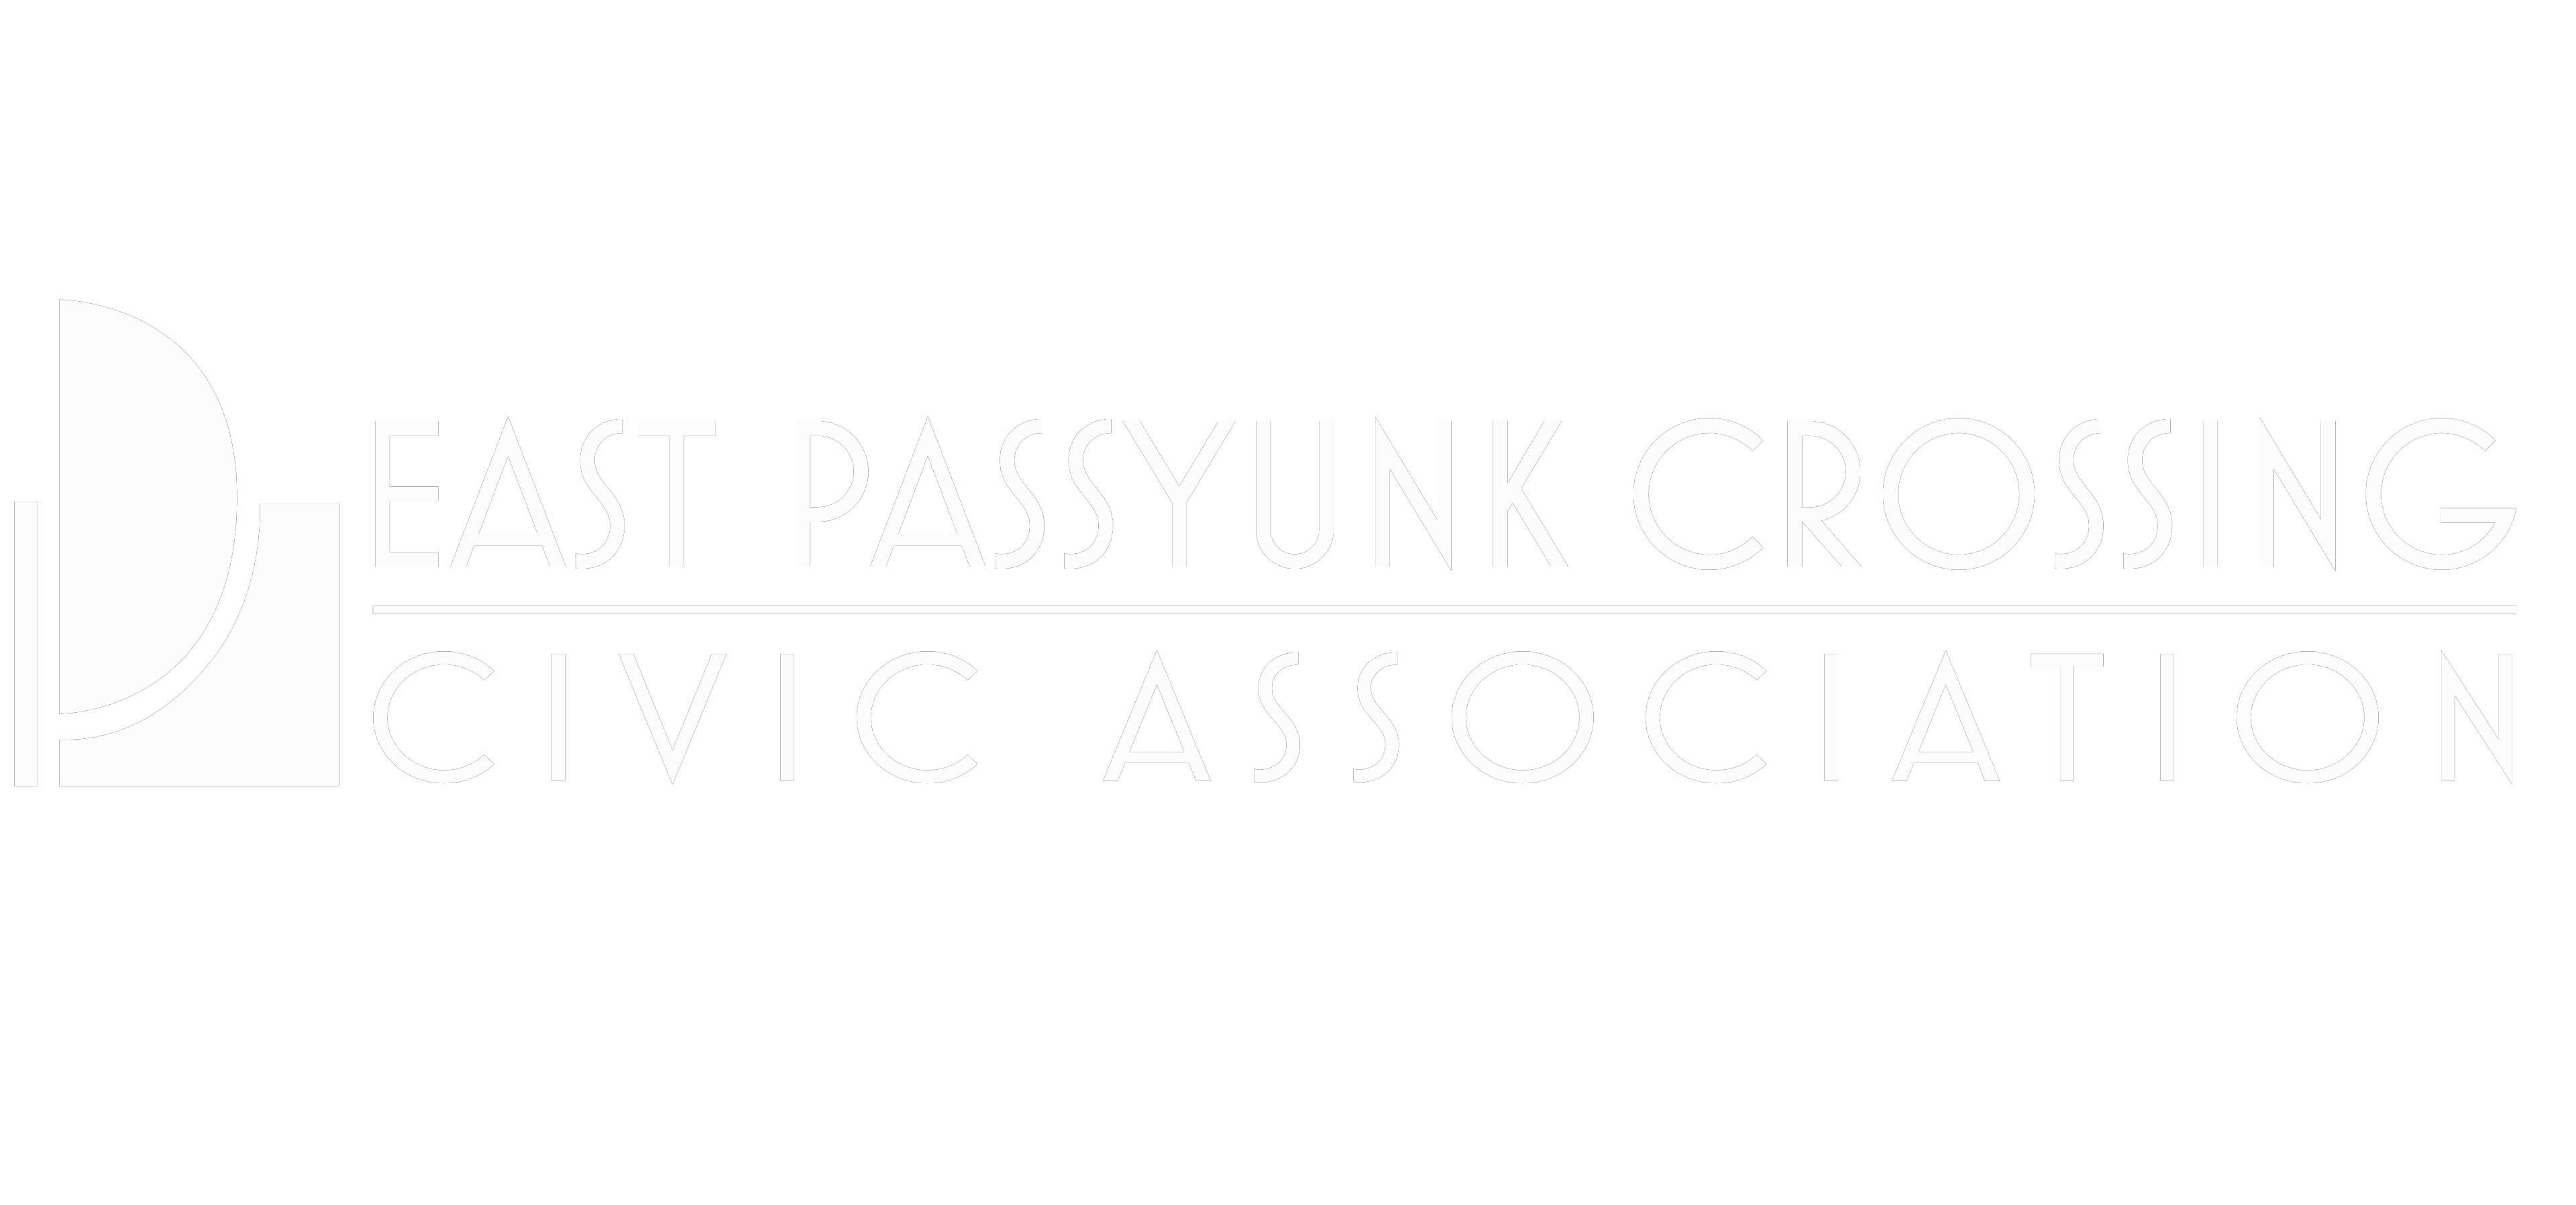 East Passyunk Crossing Civic Association